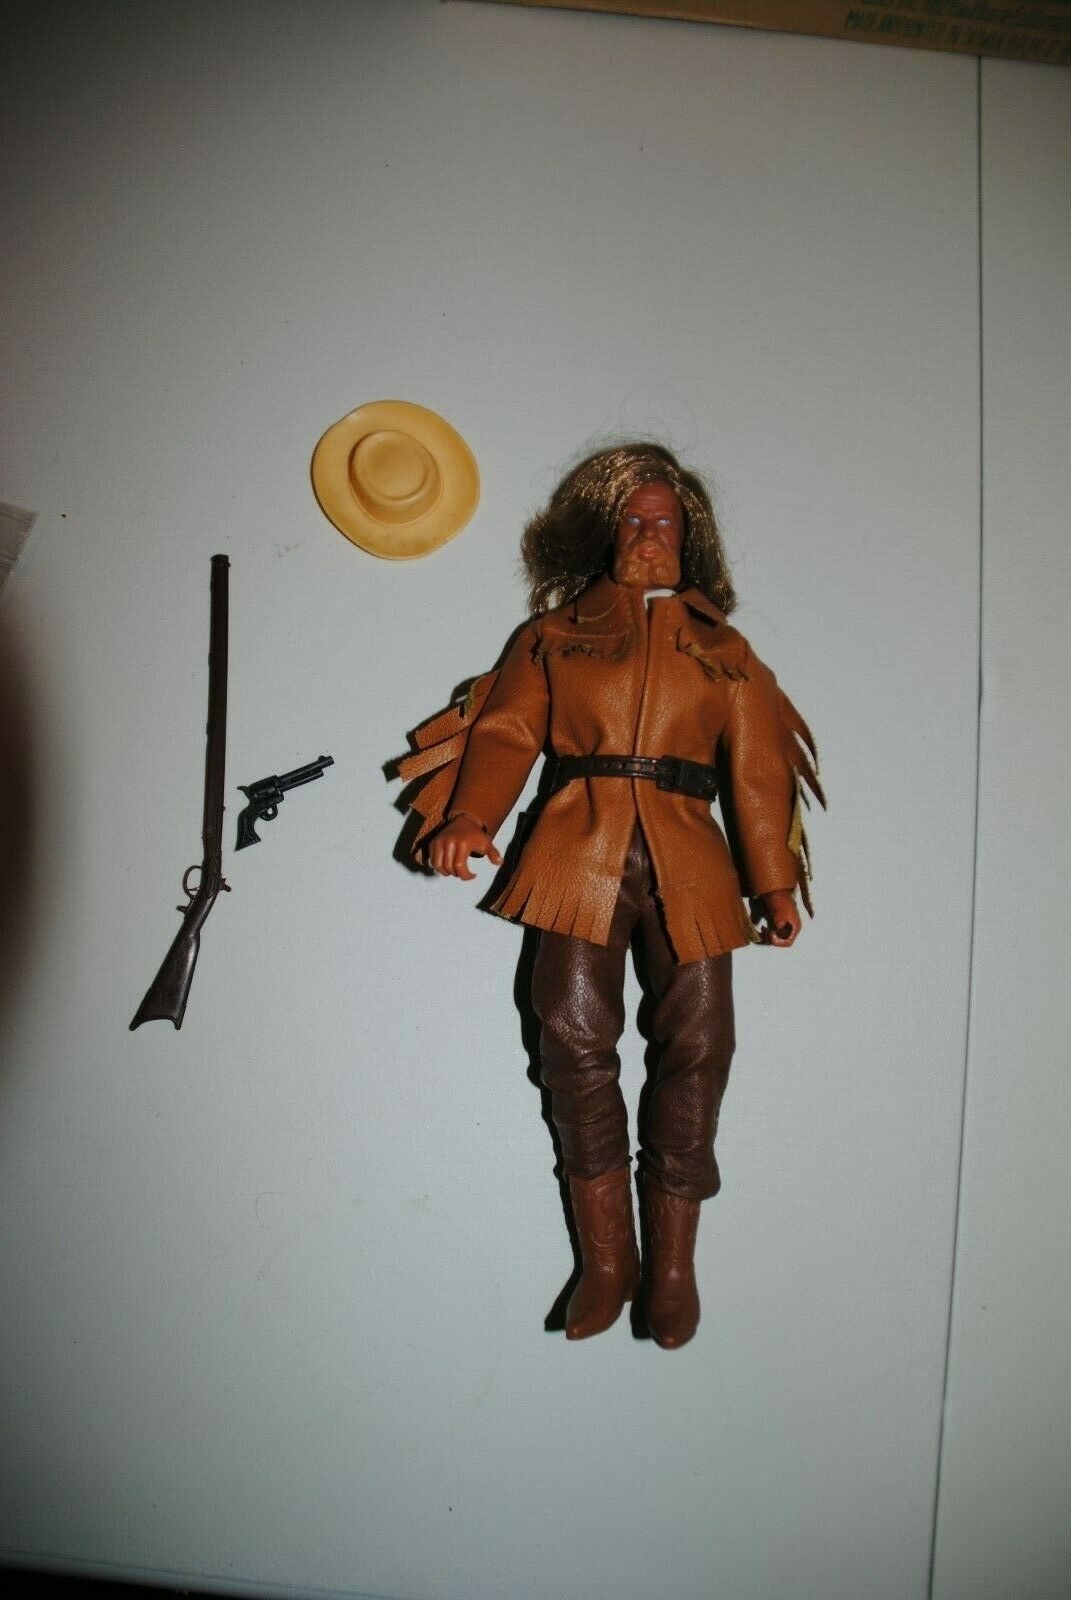 BIG JIM MATTEL  KARL MAY   OLD SHUREHAND     VERY NICE FIGURE  nous fournissons le meilleur